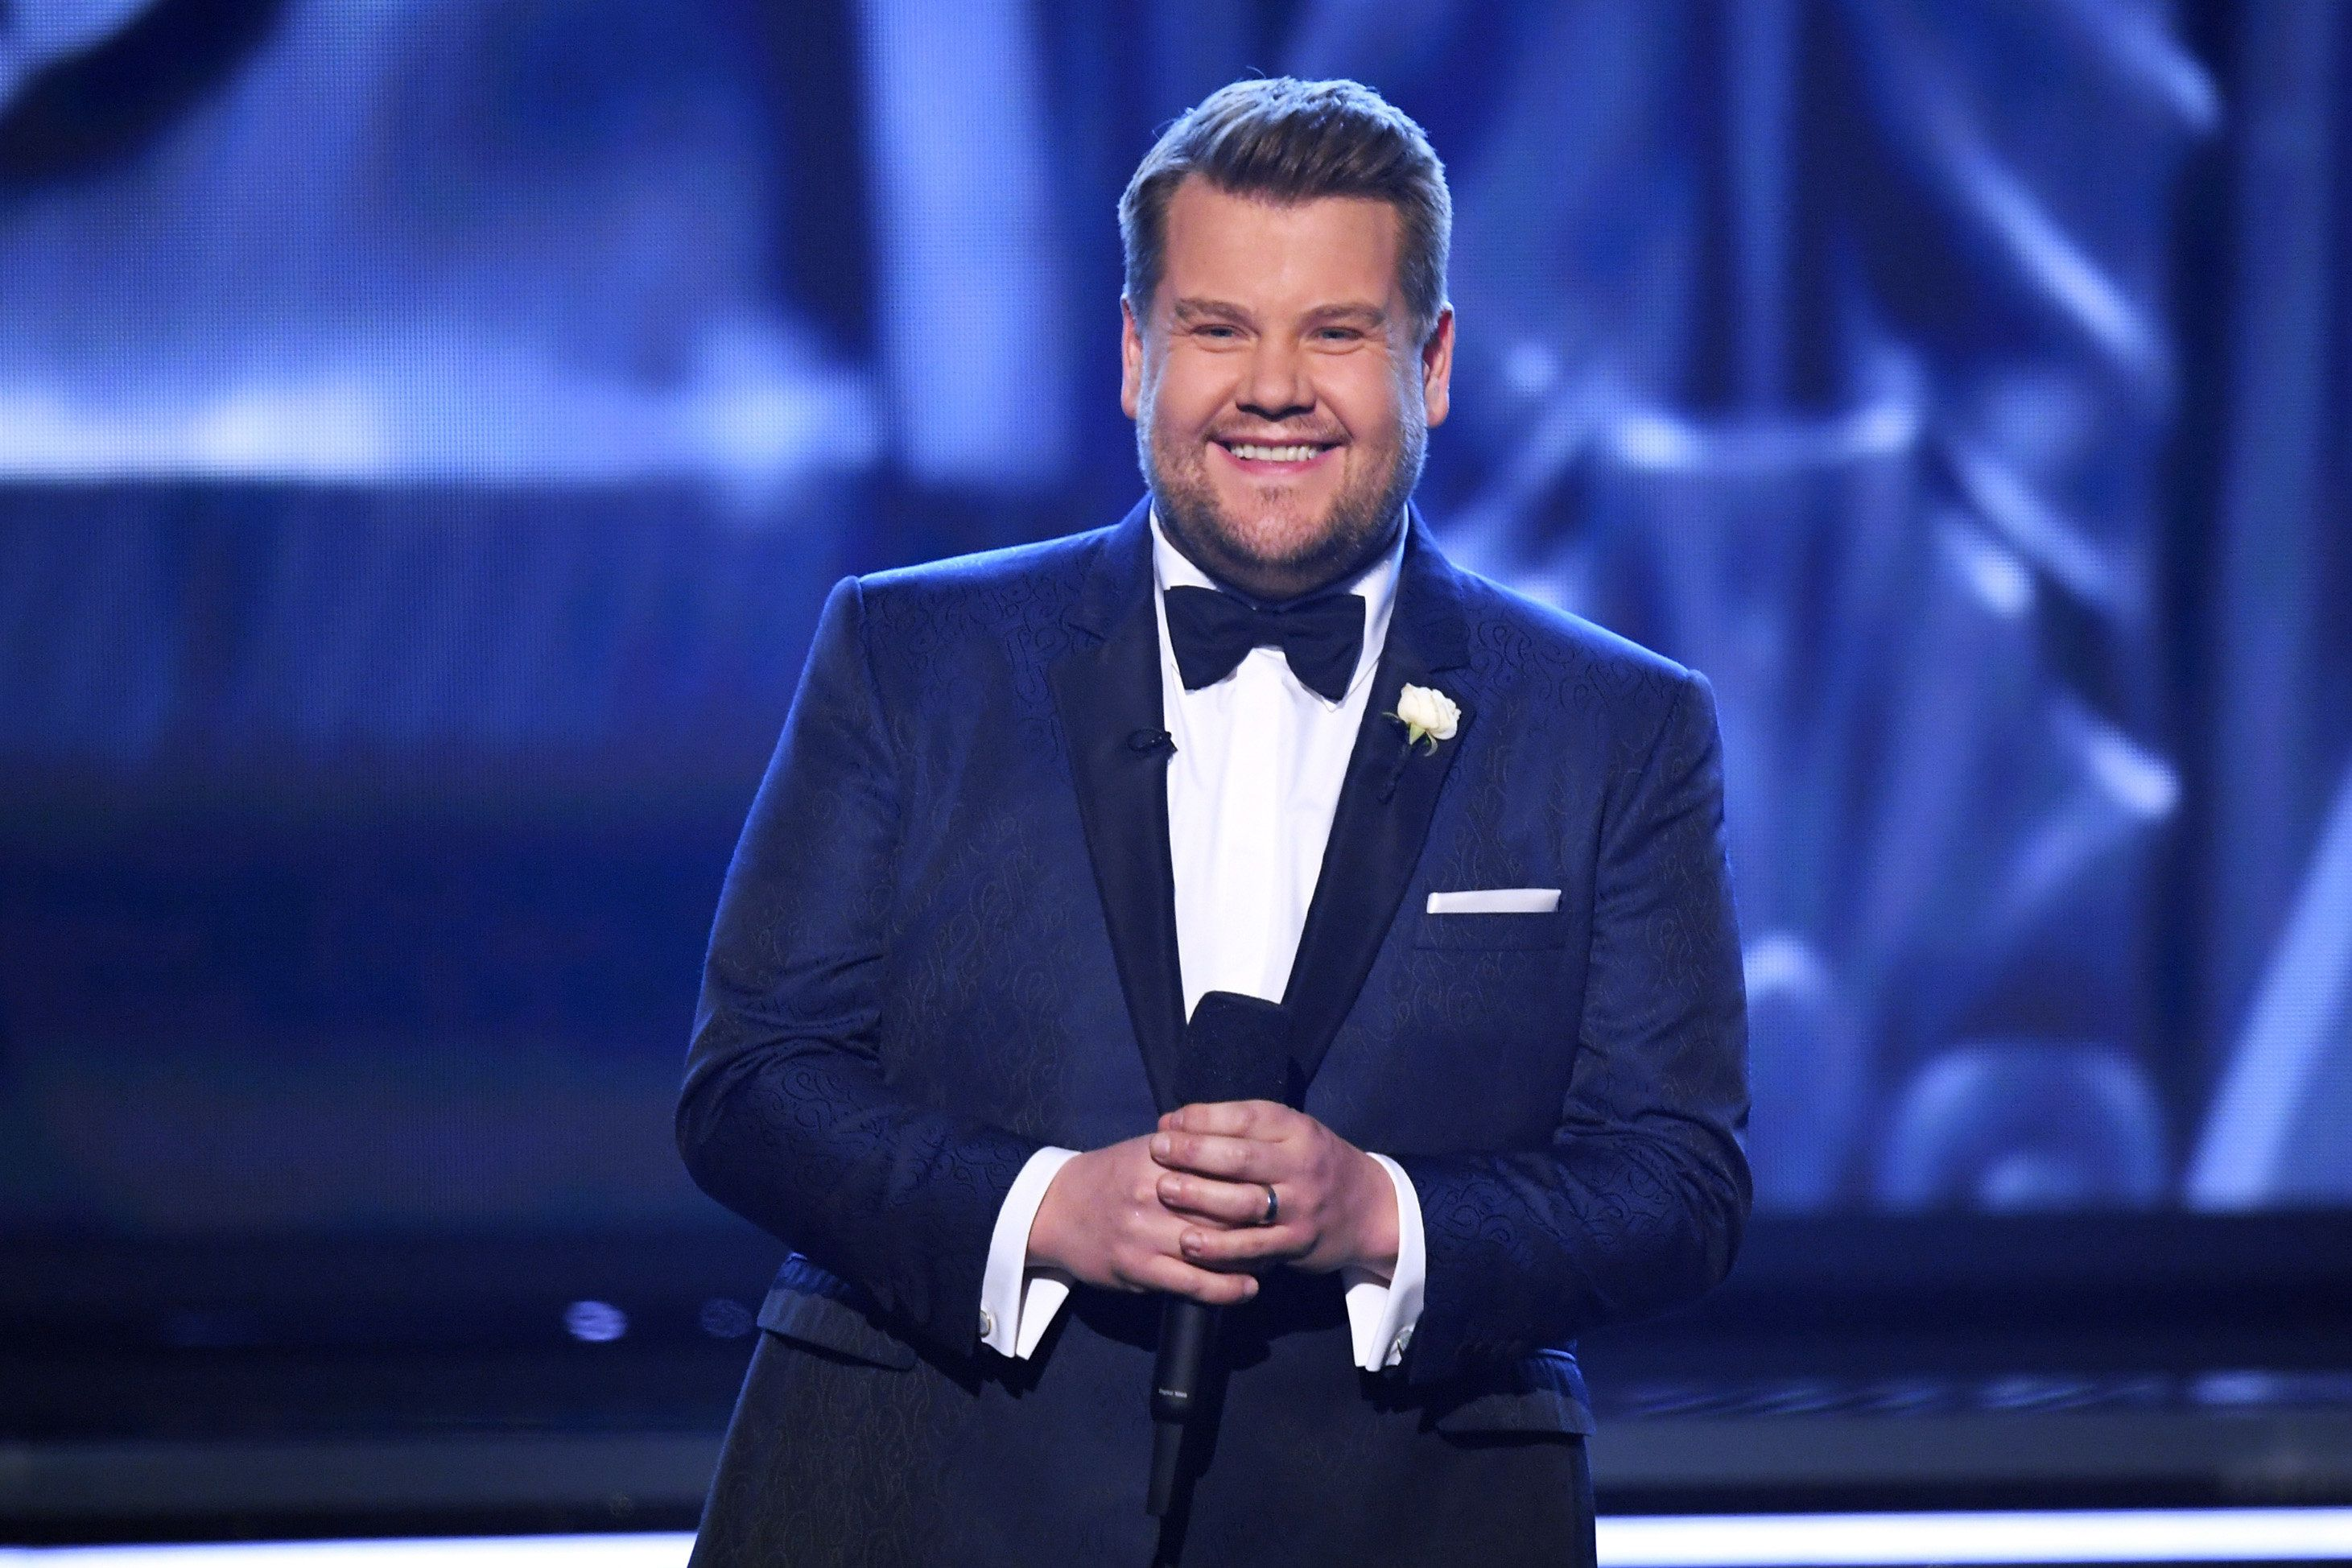 Late-night talk show host James Corden has some pretty funny insights about life as a parent.